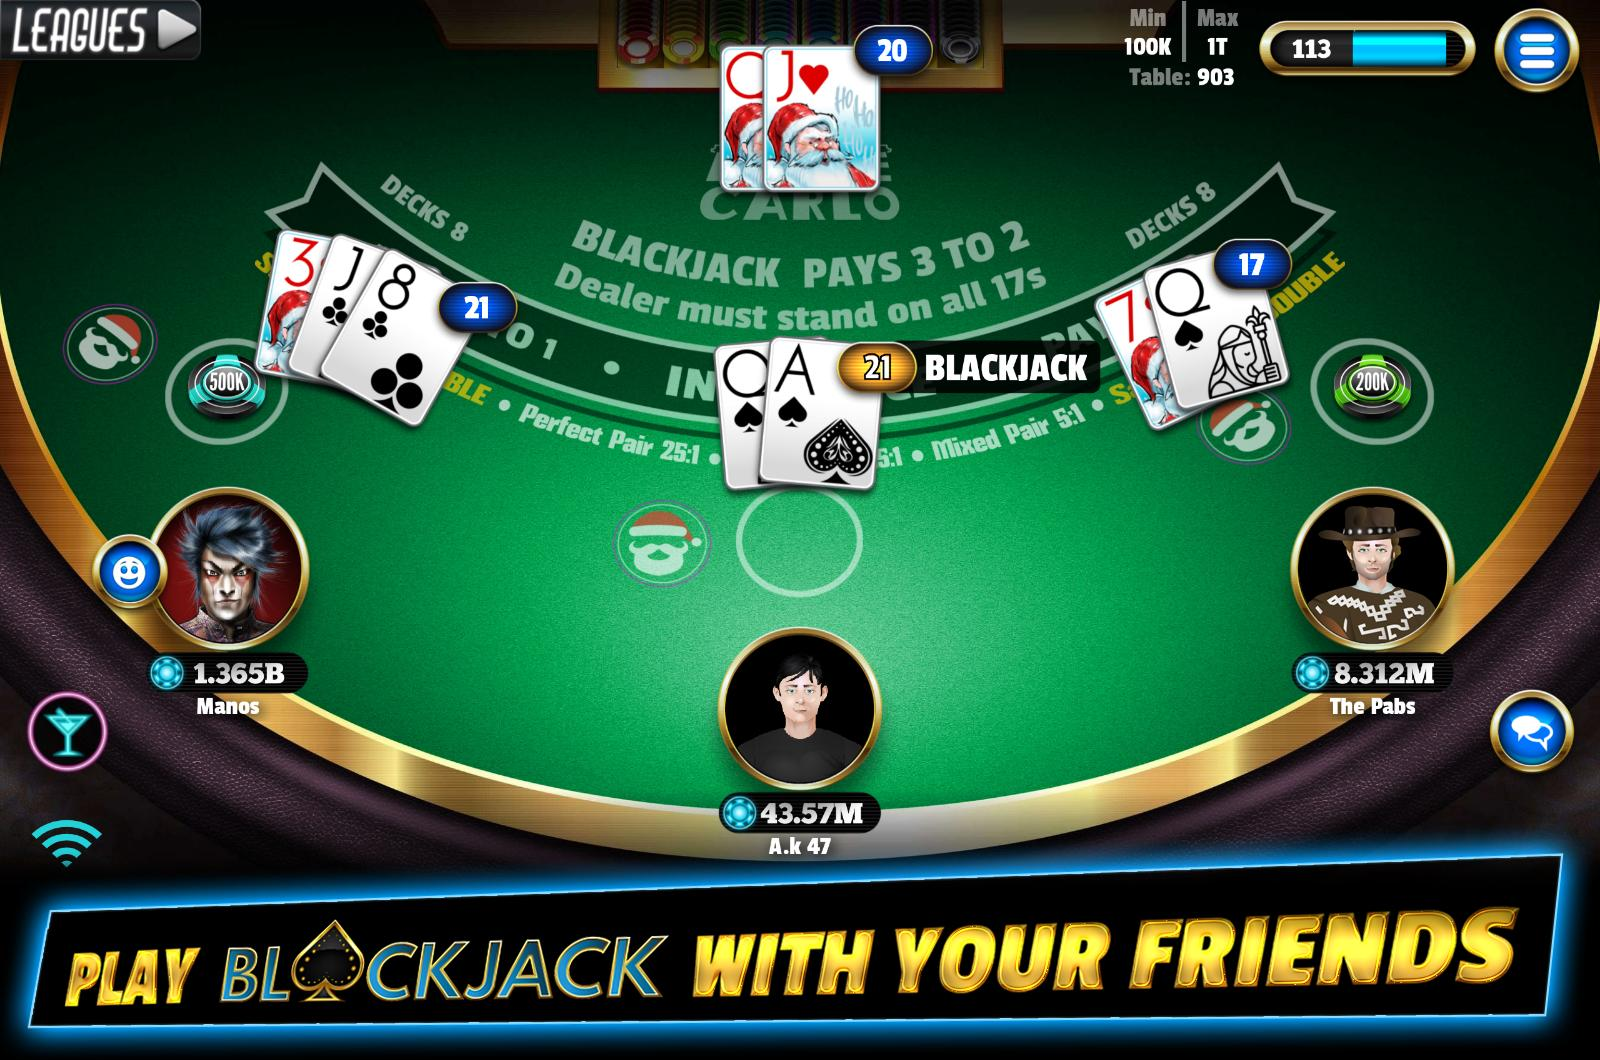 BlackJack 21 - Online Blackjack multiplayer casino for Android - APK  Download